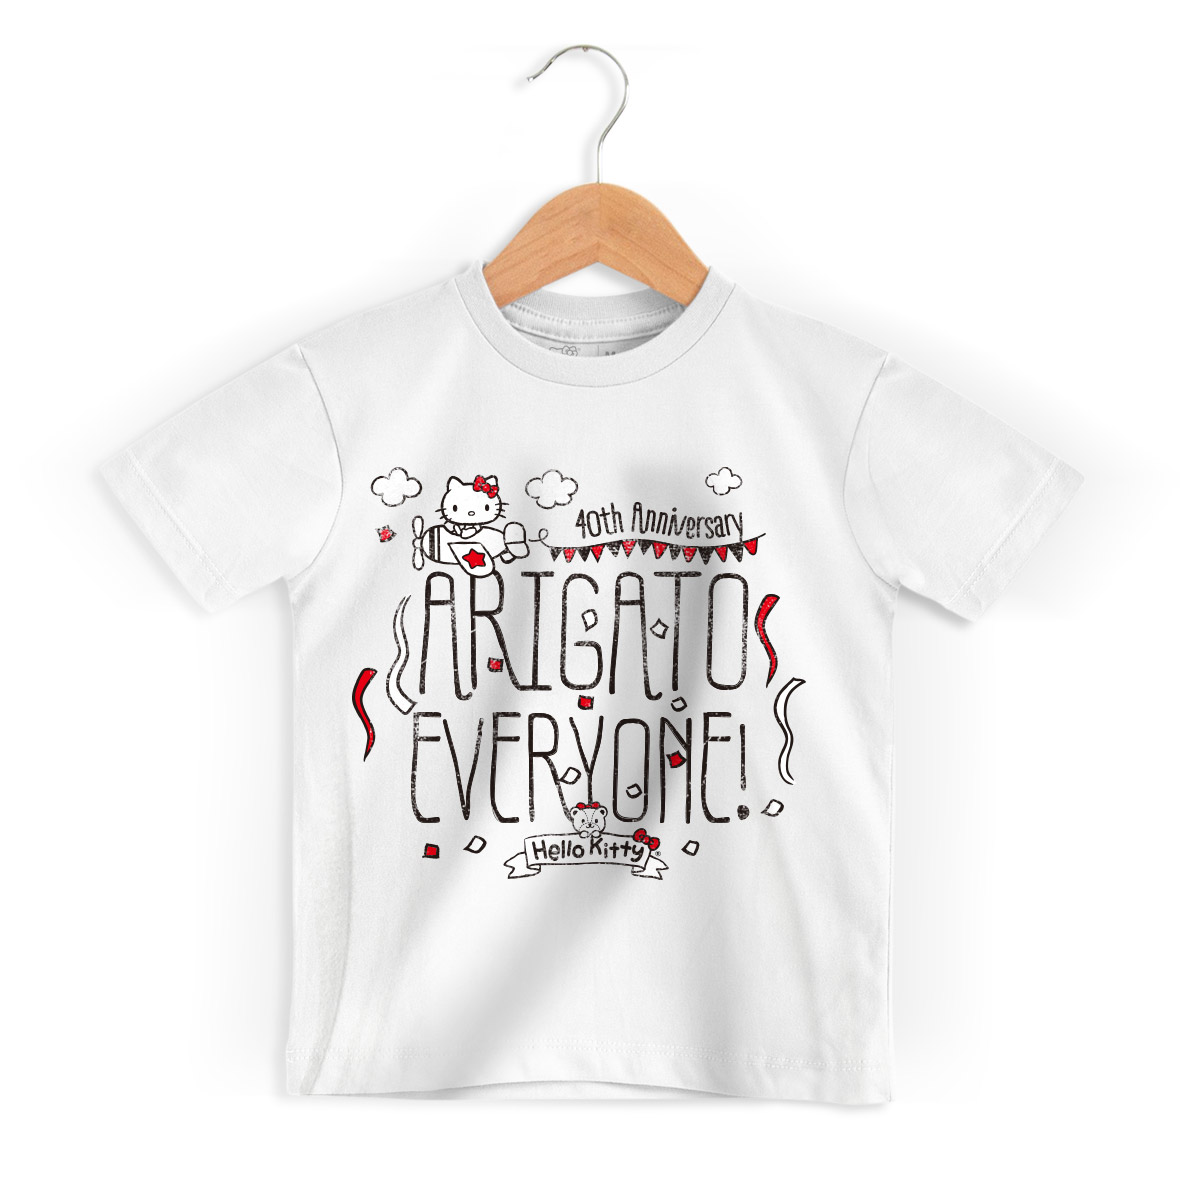 Camiseta Infantil Hello Kitty Arigato Everyone